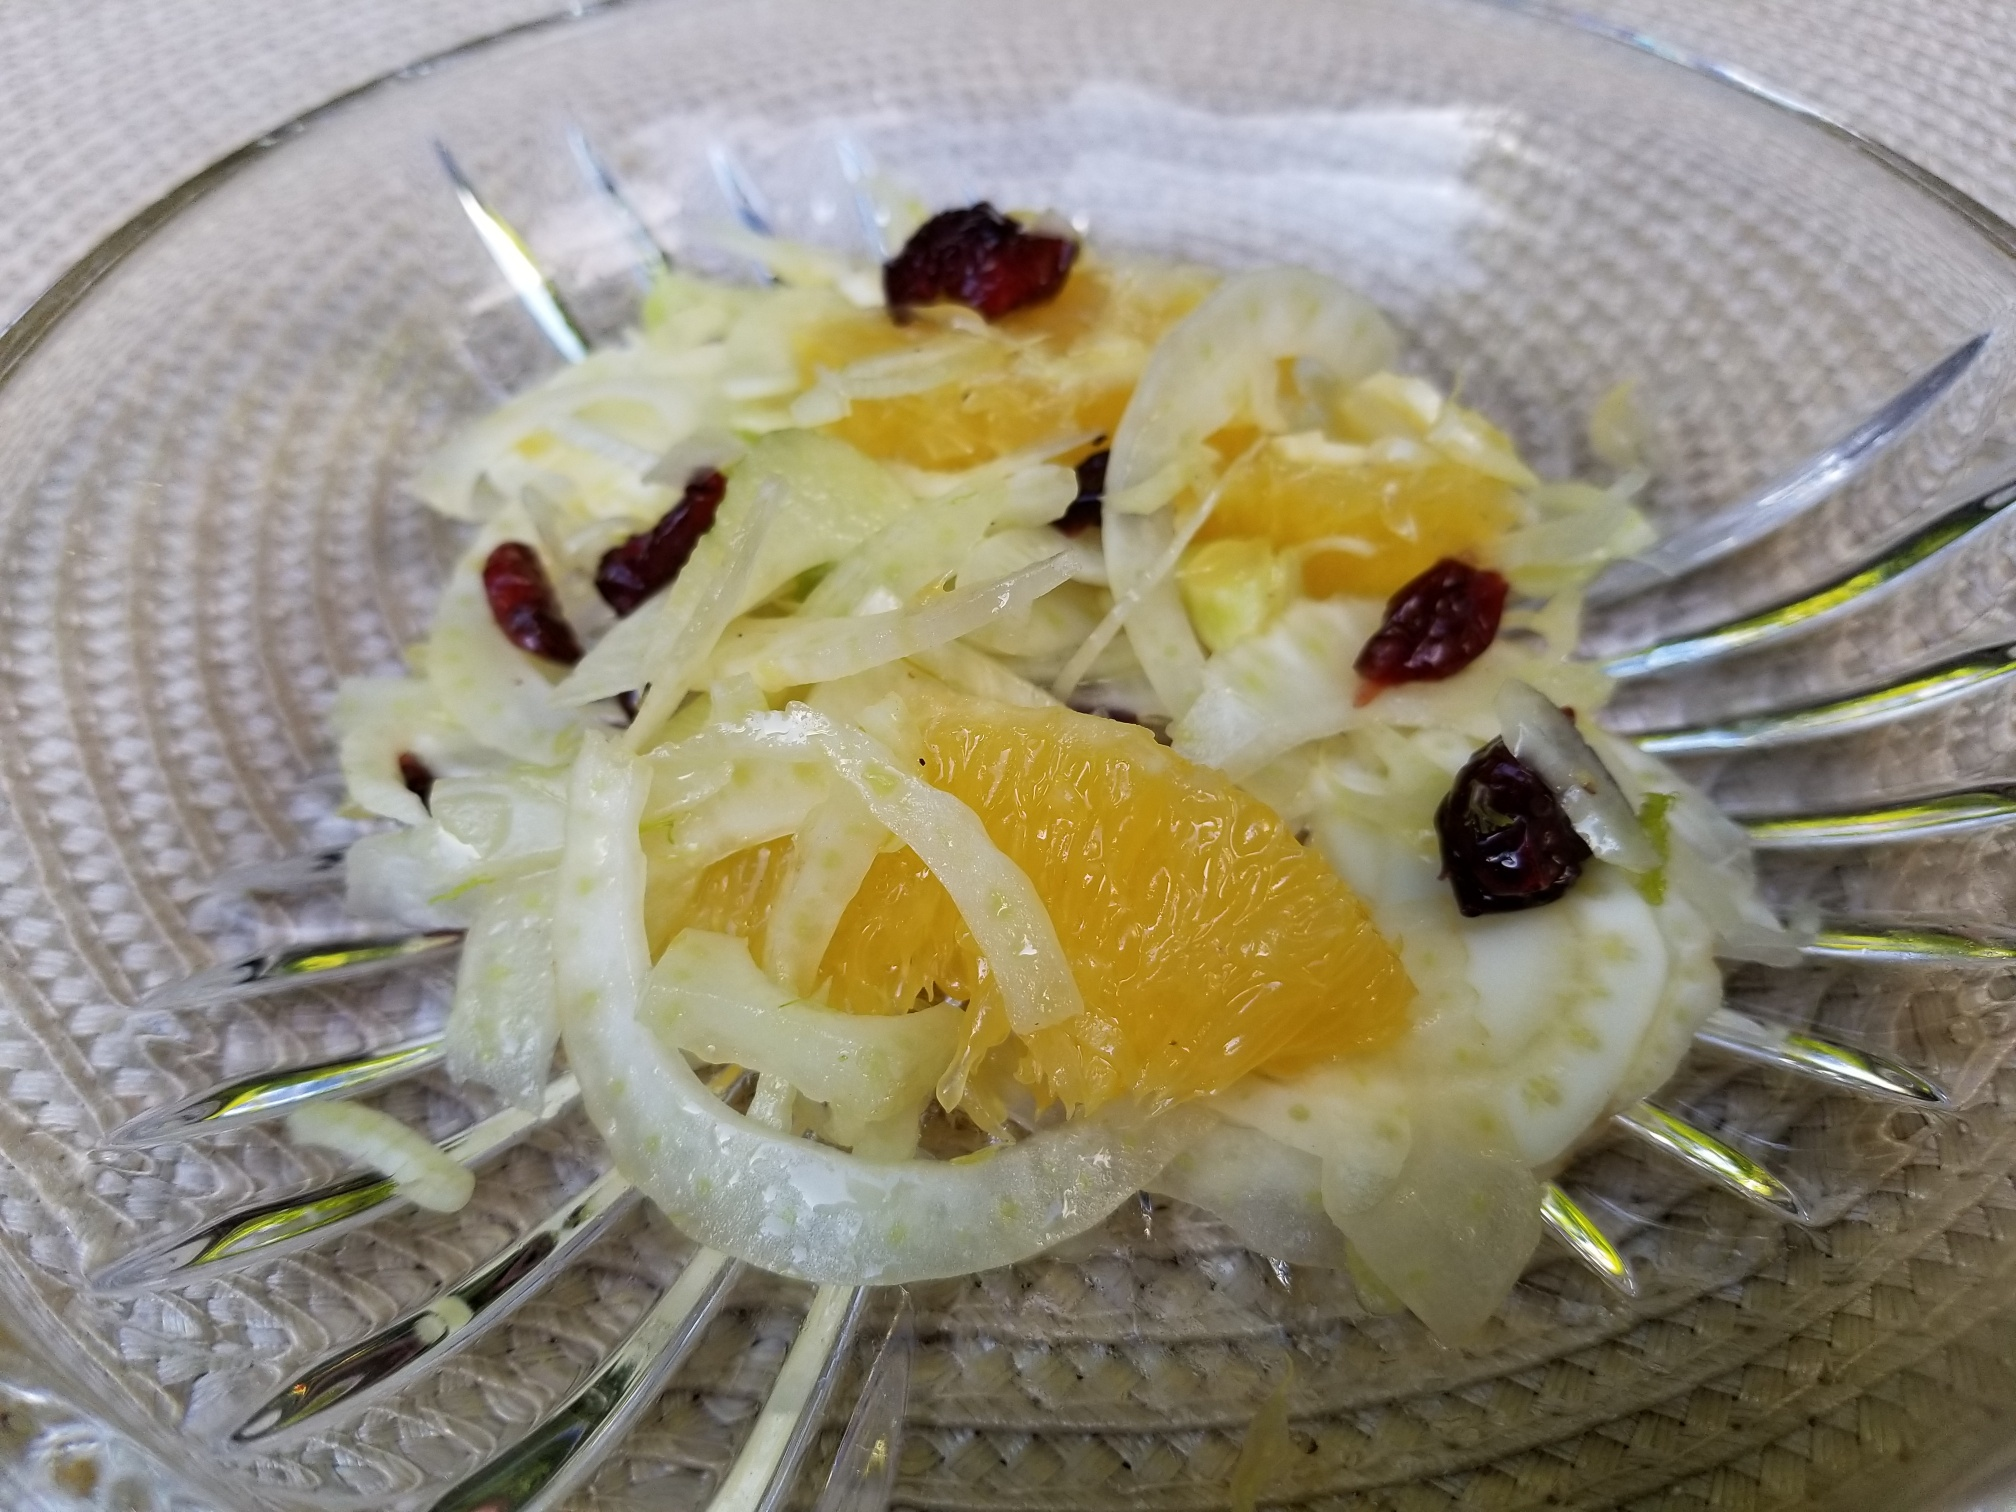 Fennel and Orange Salad